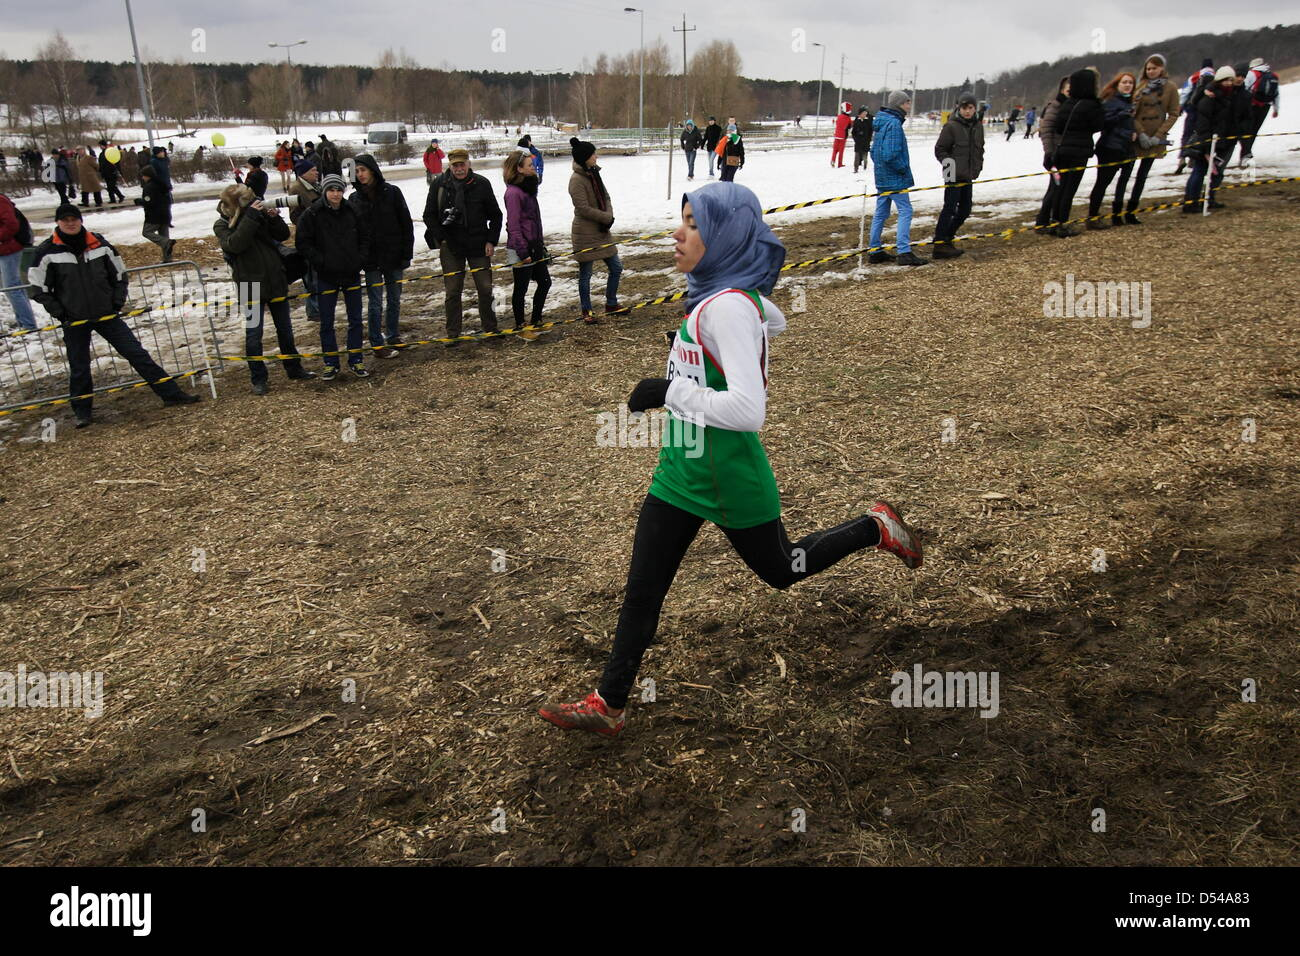 Bydgoszcz, Poland 24th, March 2013 IAAF World Cross Country Chamiponships. Junior Race Woman. Pictured: - Stock Image